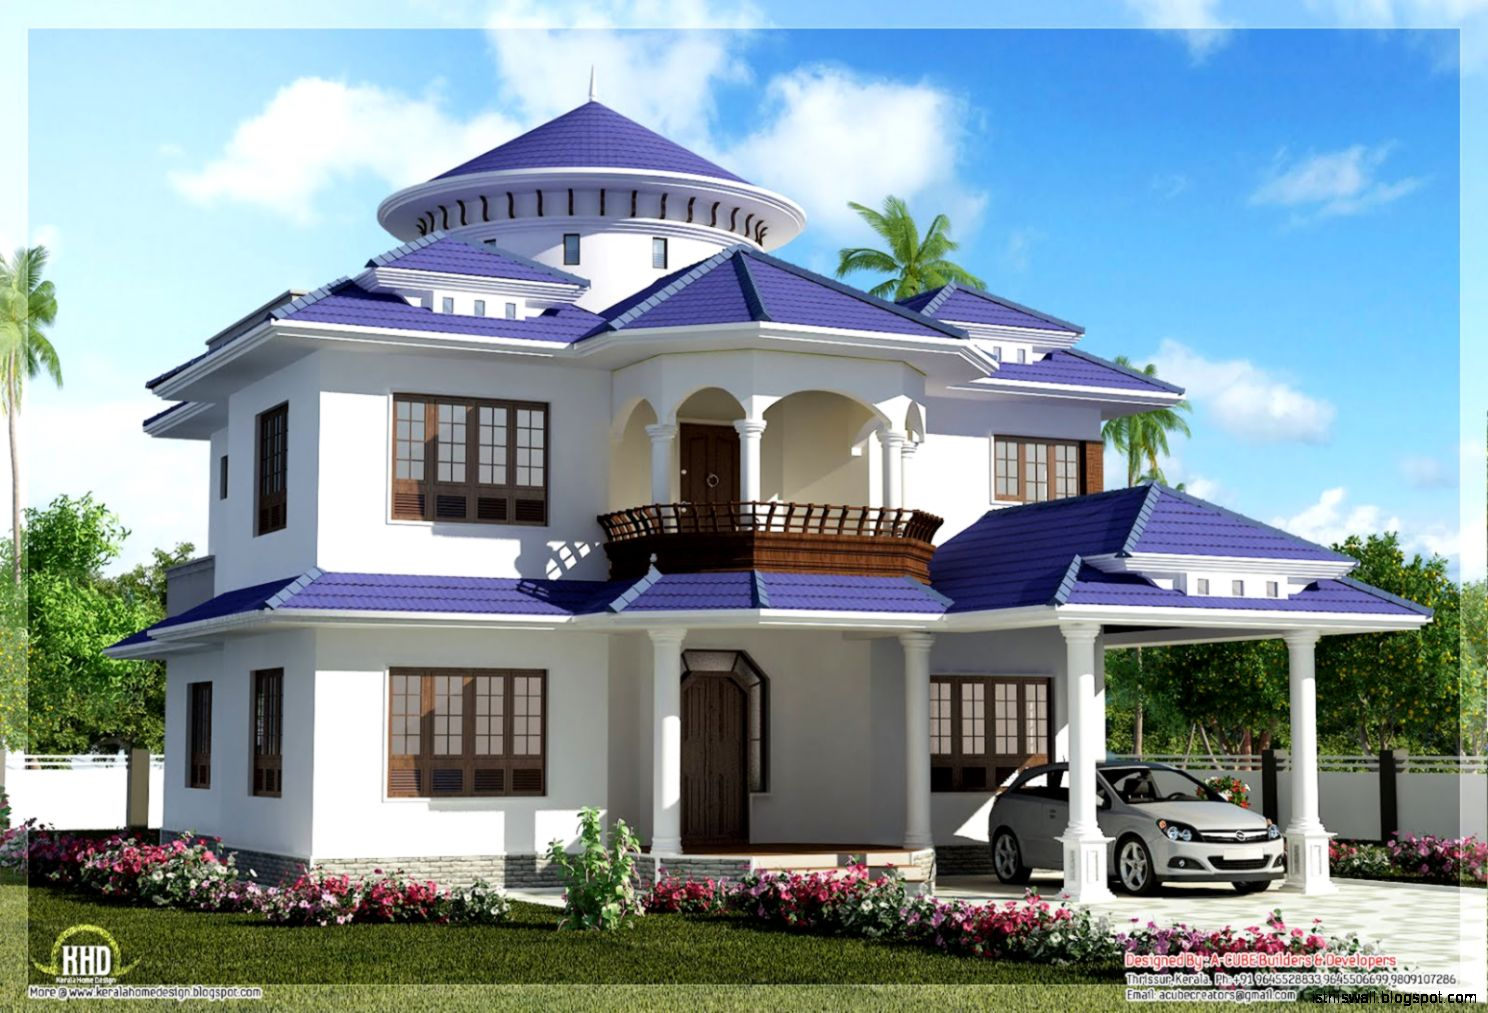 Home Design Construction Home Design Ideas